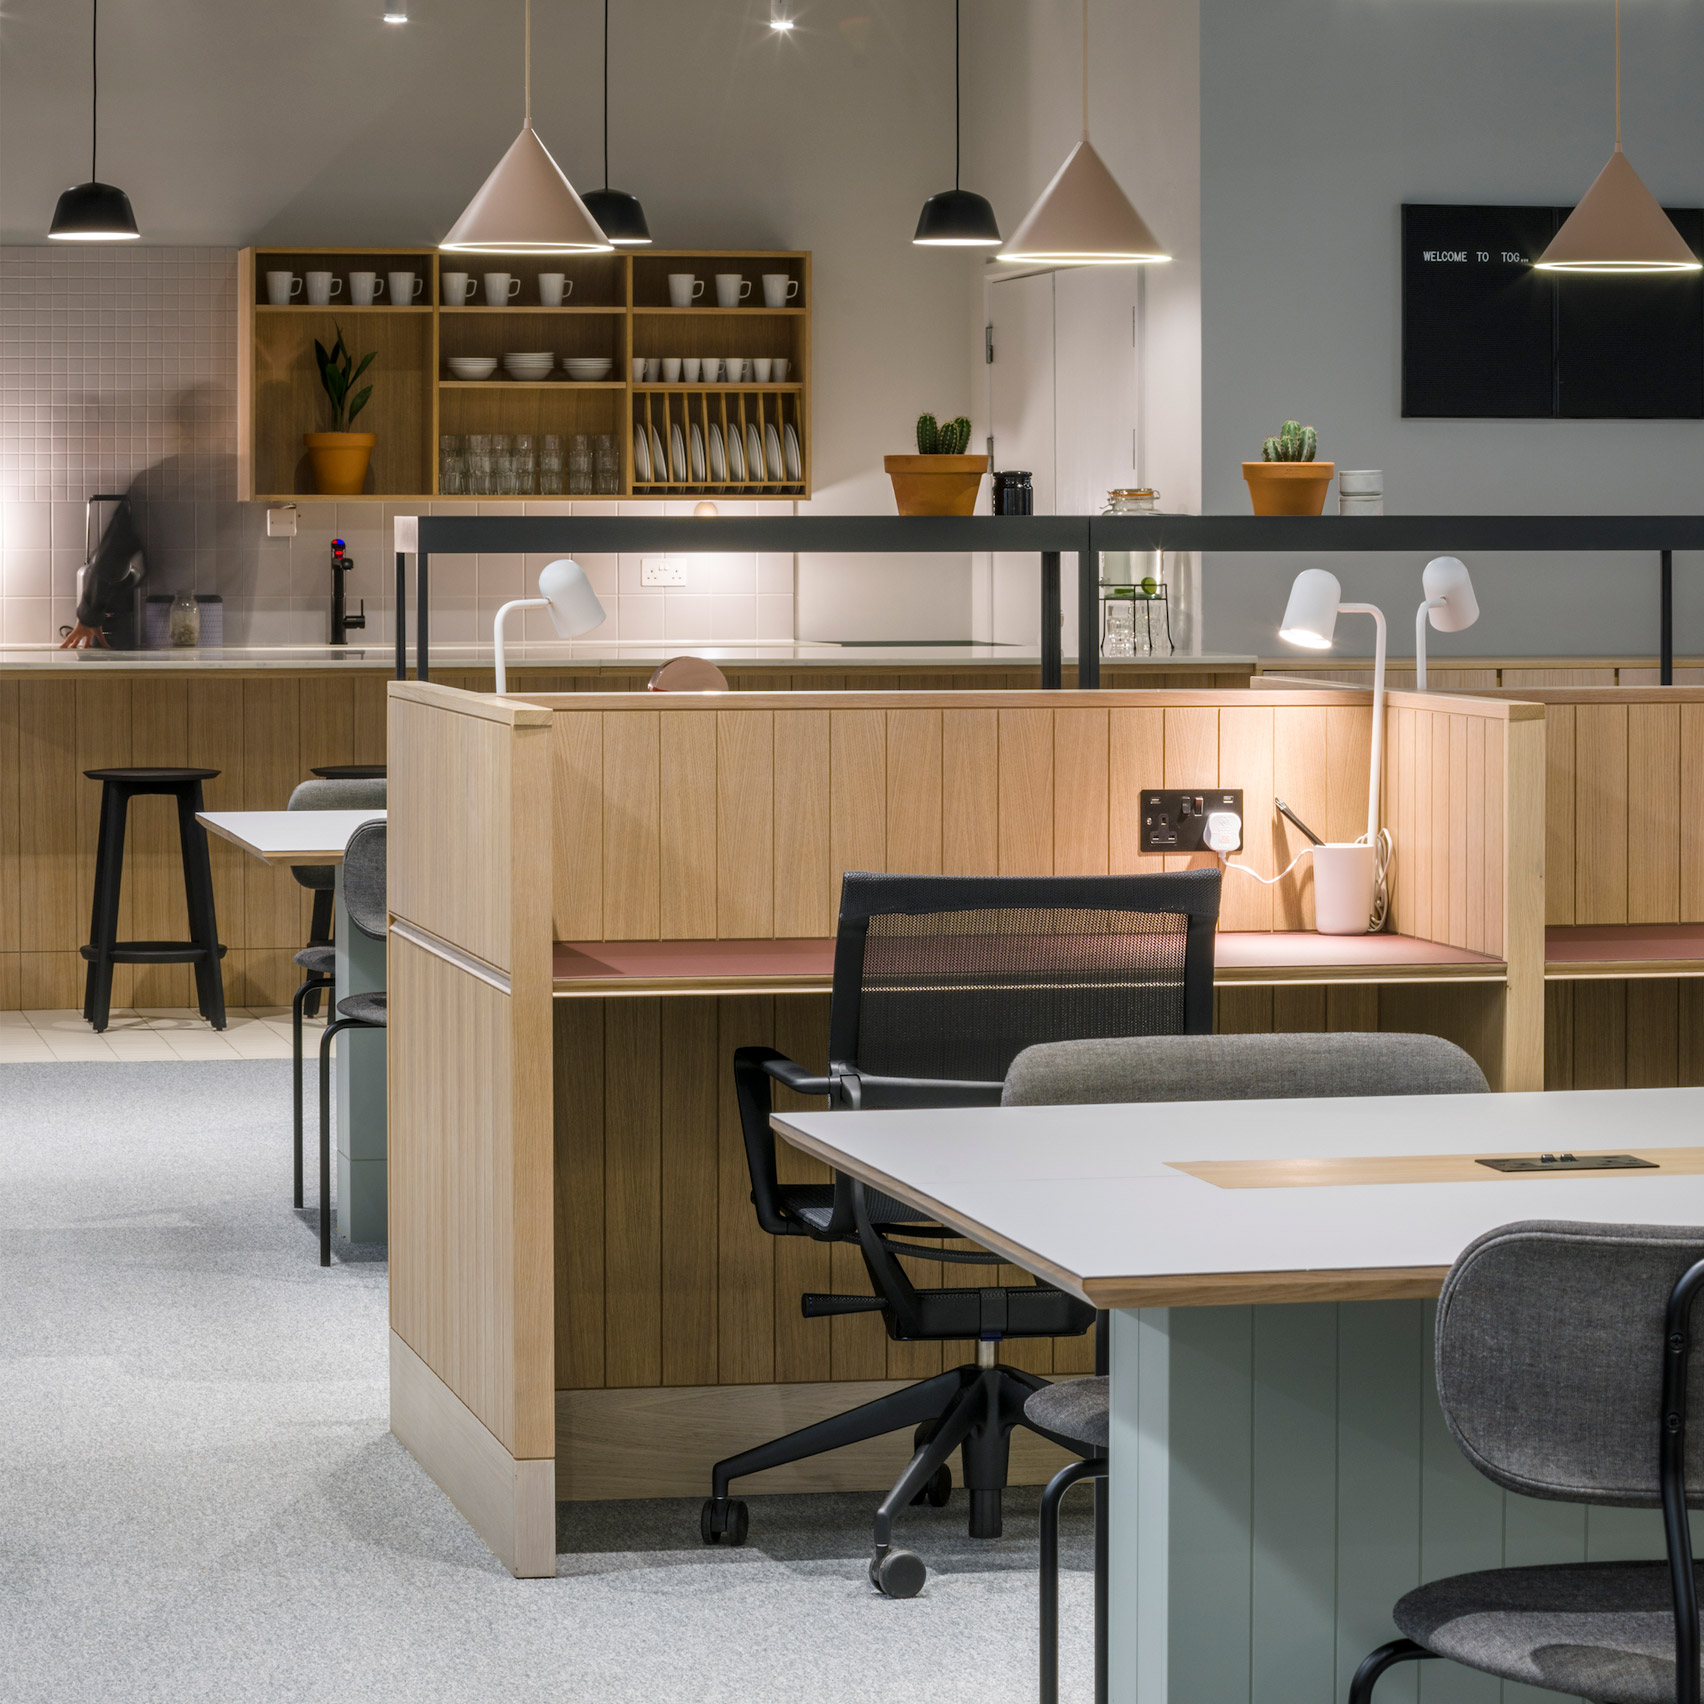 Top 10 office interiors: Thomas House, UK by SODA